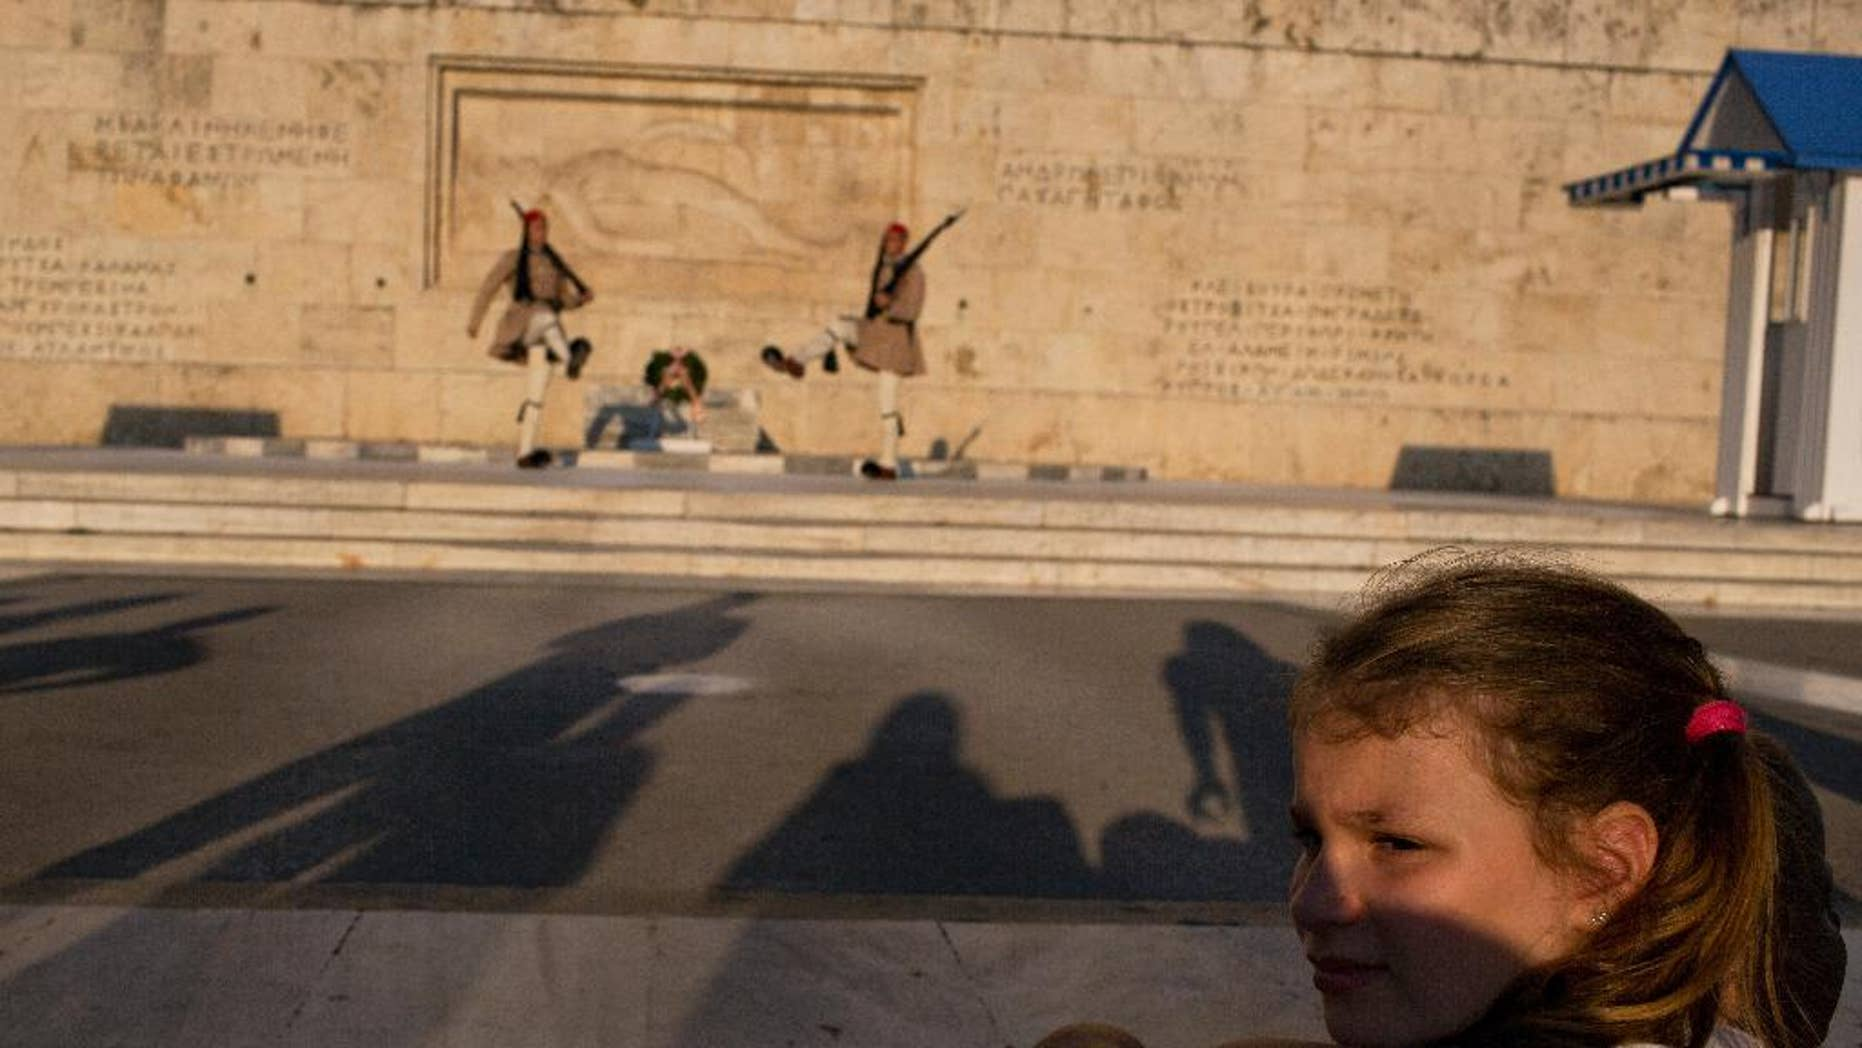 A visitor looks away from the changing of the guard ceremony at Greece's parliament to watch a small number of protesters across the street, in central Athens on Tuesday, July 5, 2016. The tiny anti-government rally was held to mark a year since Greeks voted against bailout measures in a referendum. Shortly after the vote, Greece reaching a third bailout deal with international rescue creditors. (AP Photo/Petros Giannakouris)